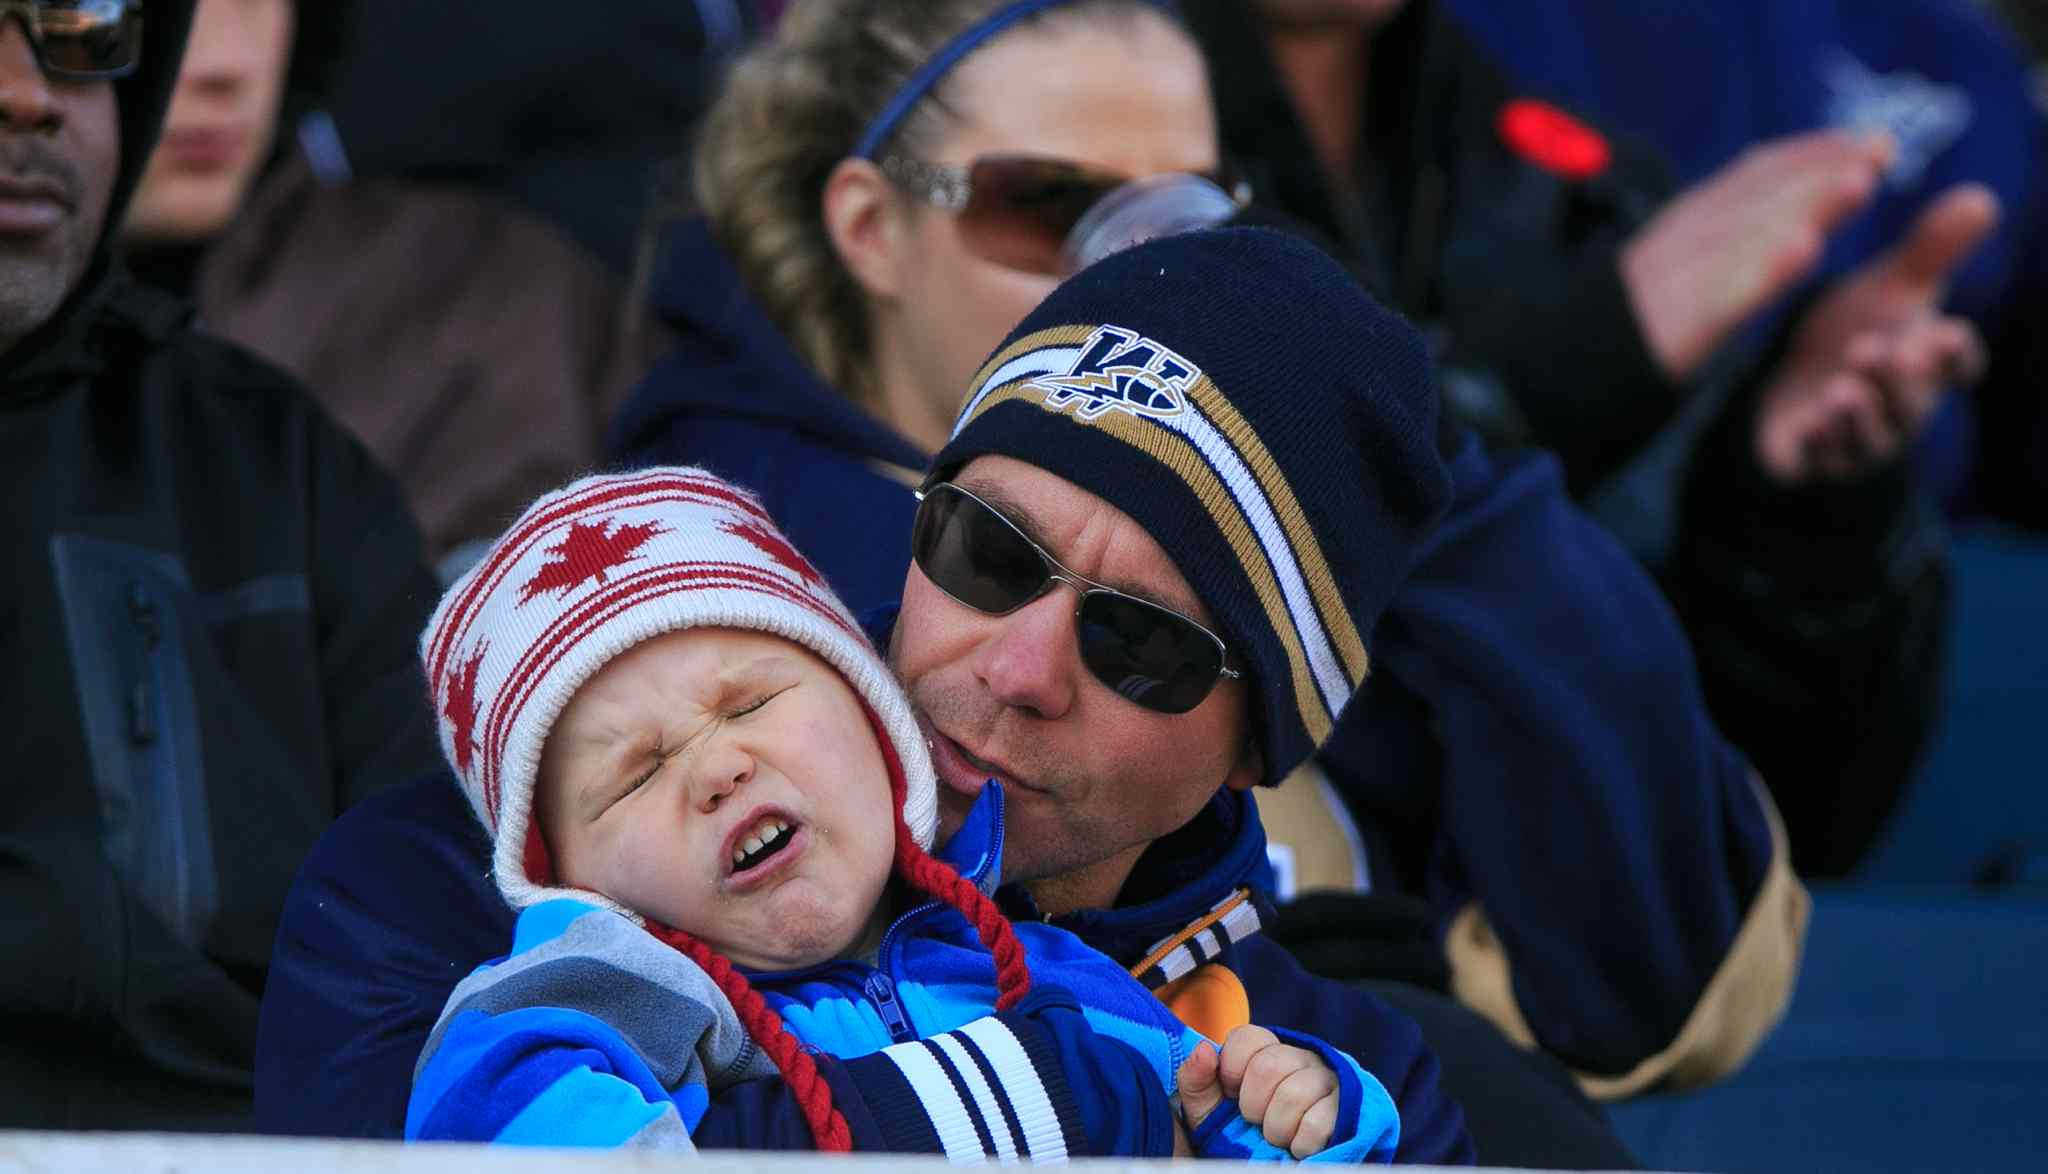 Keith Tarr calms his three-year-old son Jaxon near the end of another Blue Bombers loss at Investors Group Field.